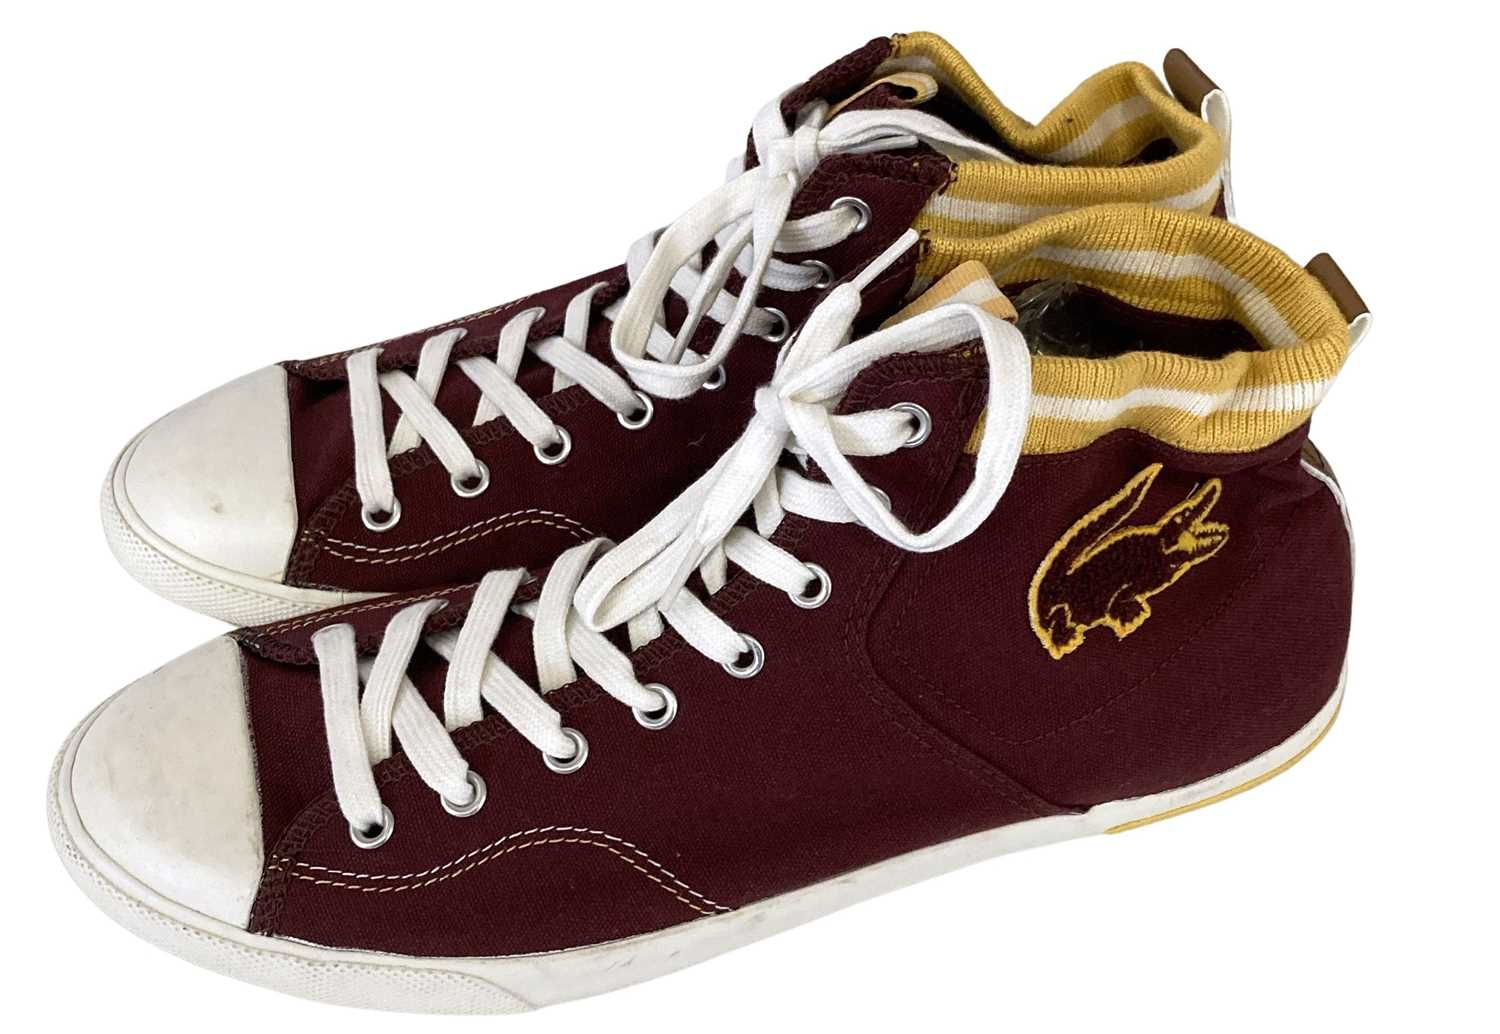 ED SHEERAN'S OWNED AND WORN LACOSTE TRAINERS.